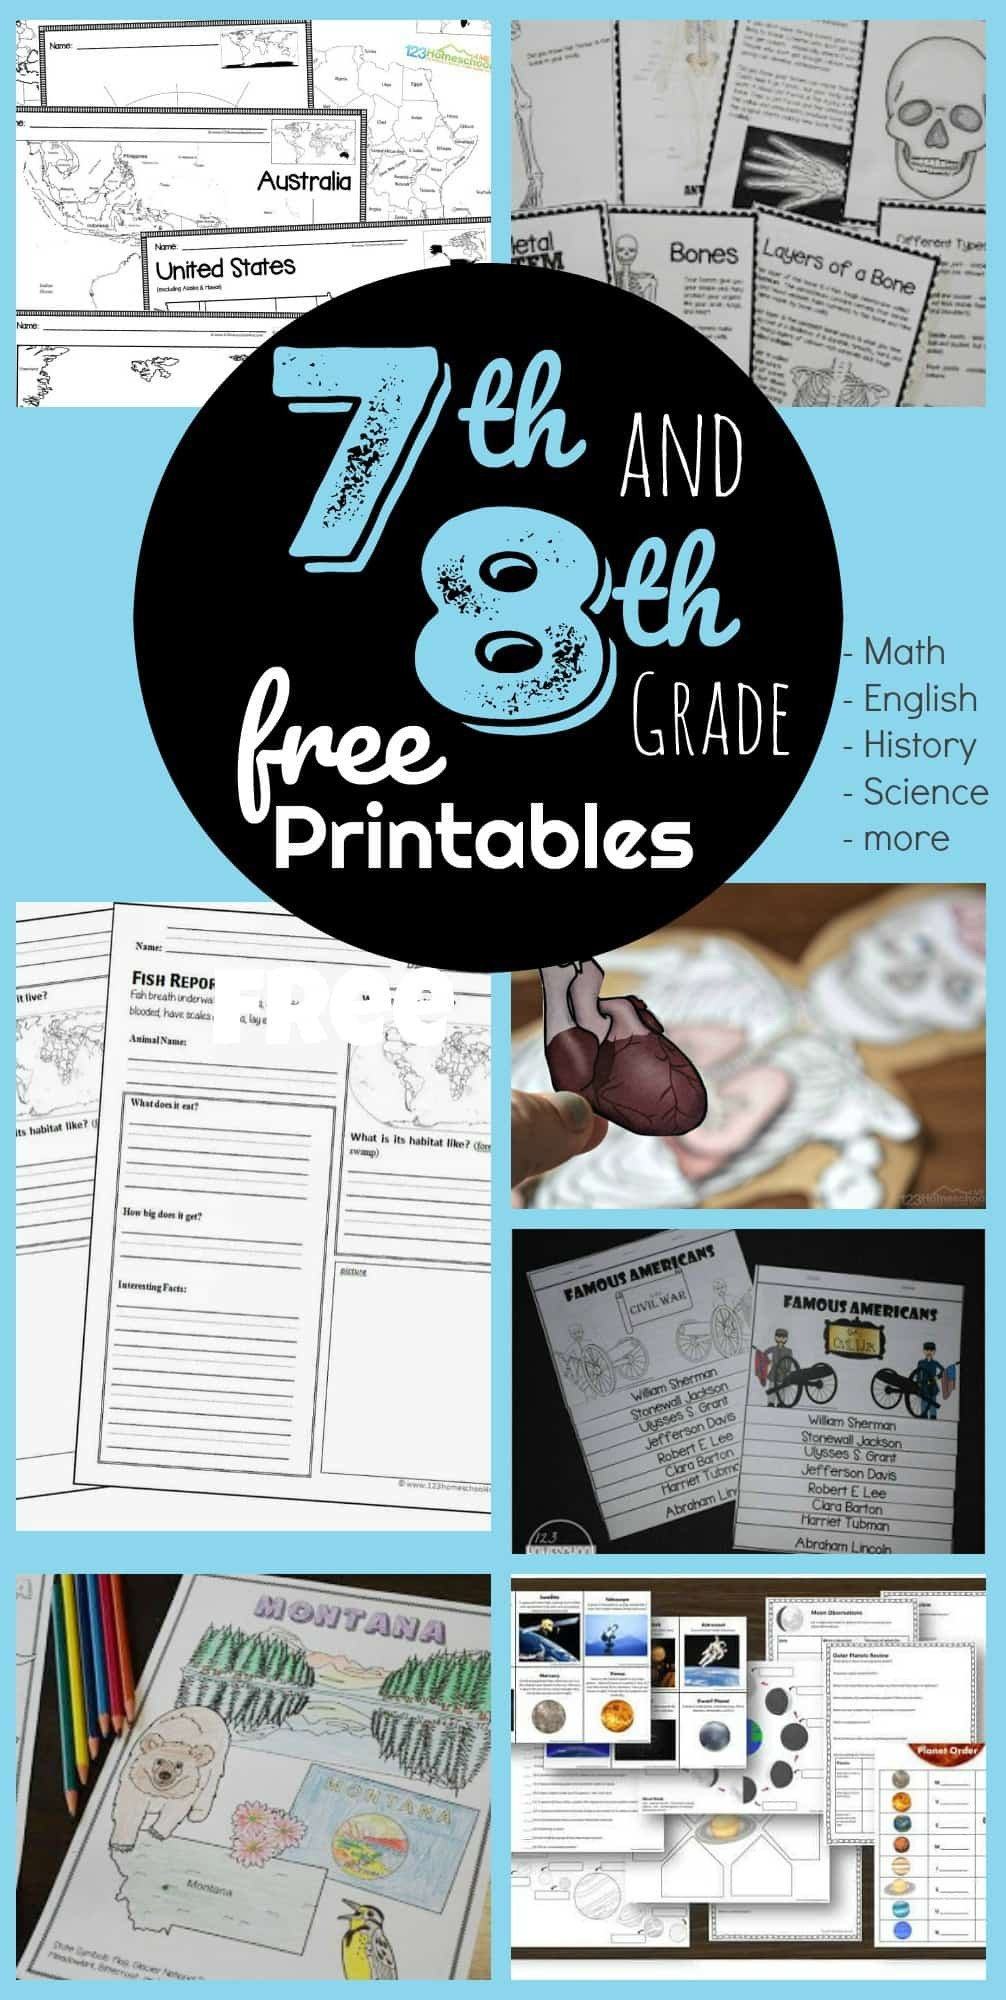 Free Us History Worksheets Free 7th & 8th Grade Worksheets